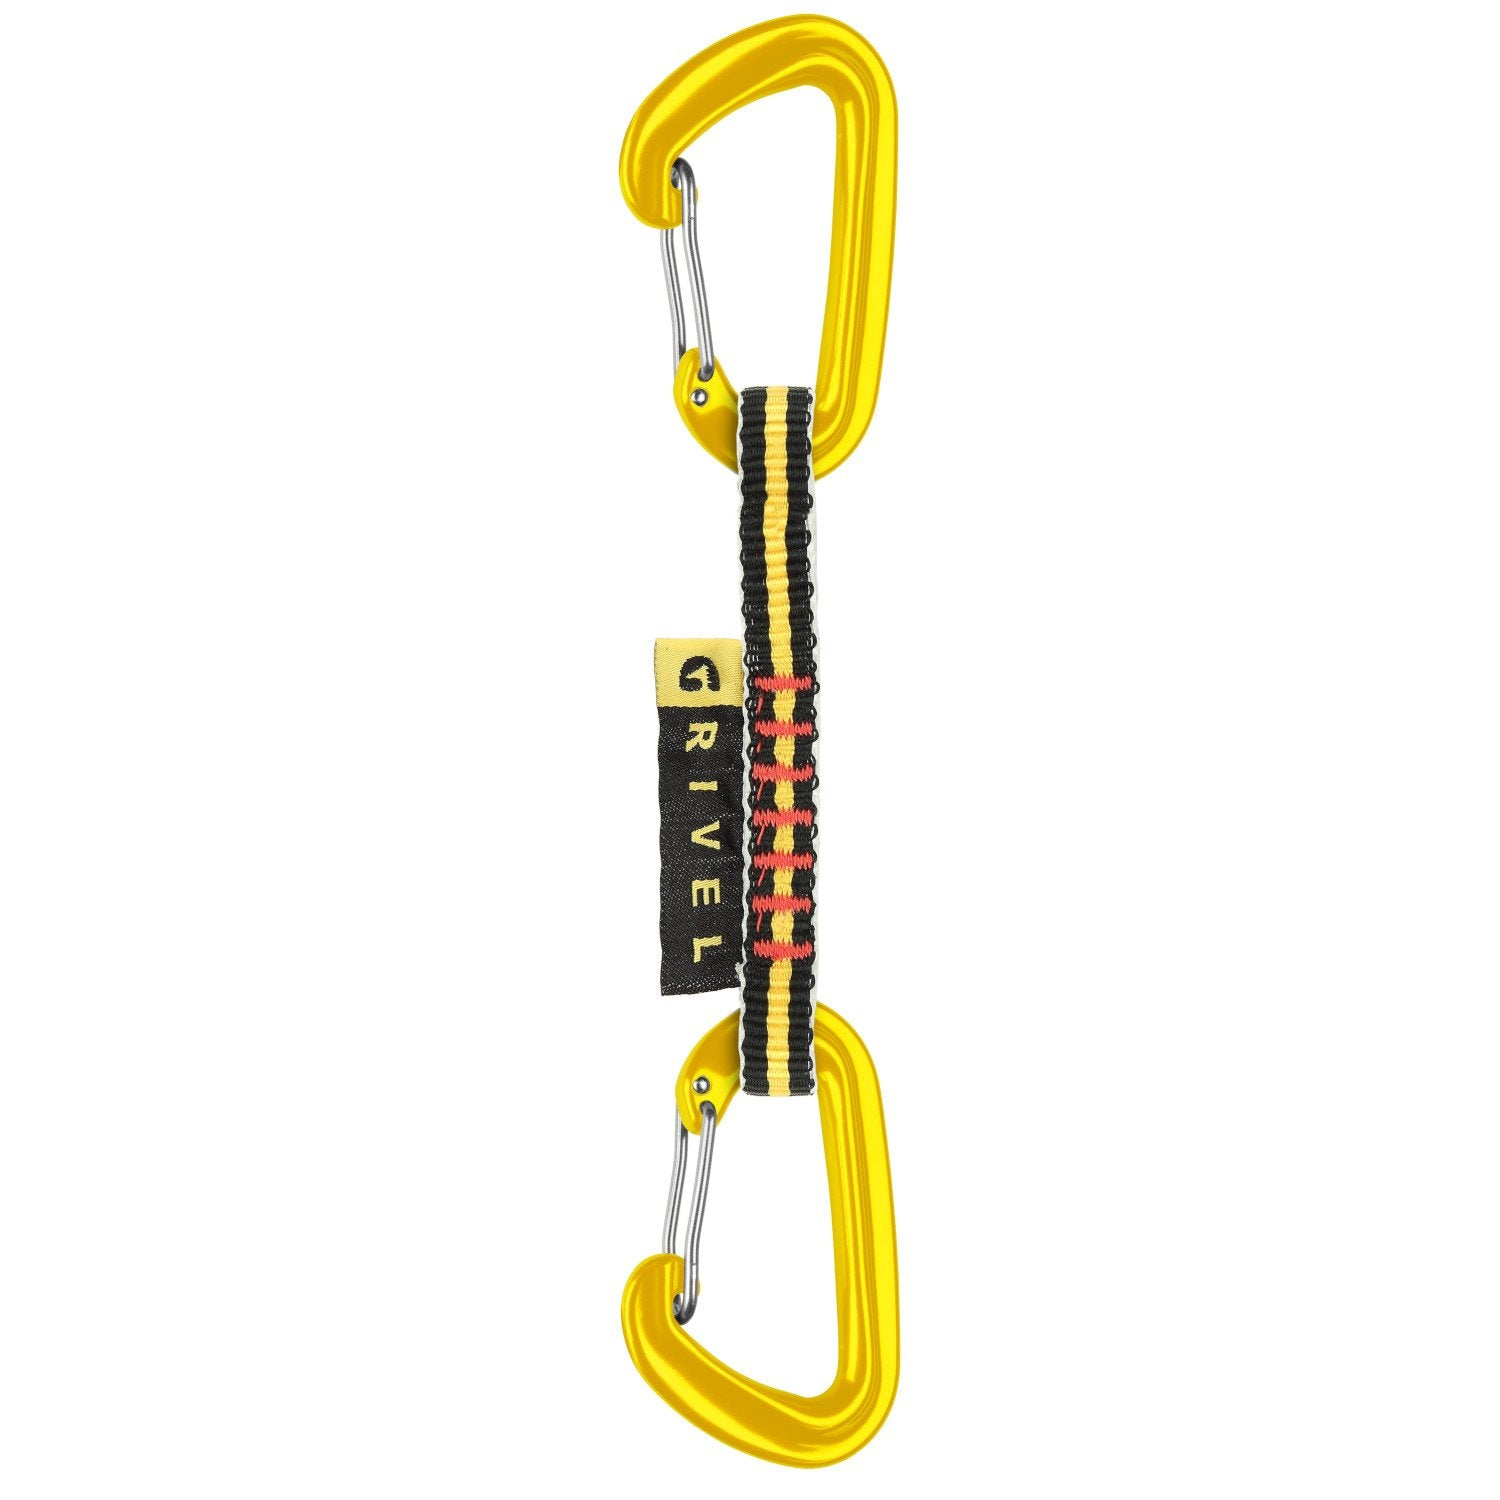 Grivel 55 Quickdraw 11cm, with a black and yellow sling and yellow carabiners